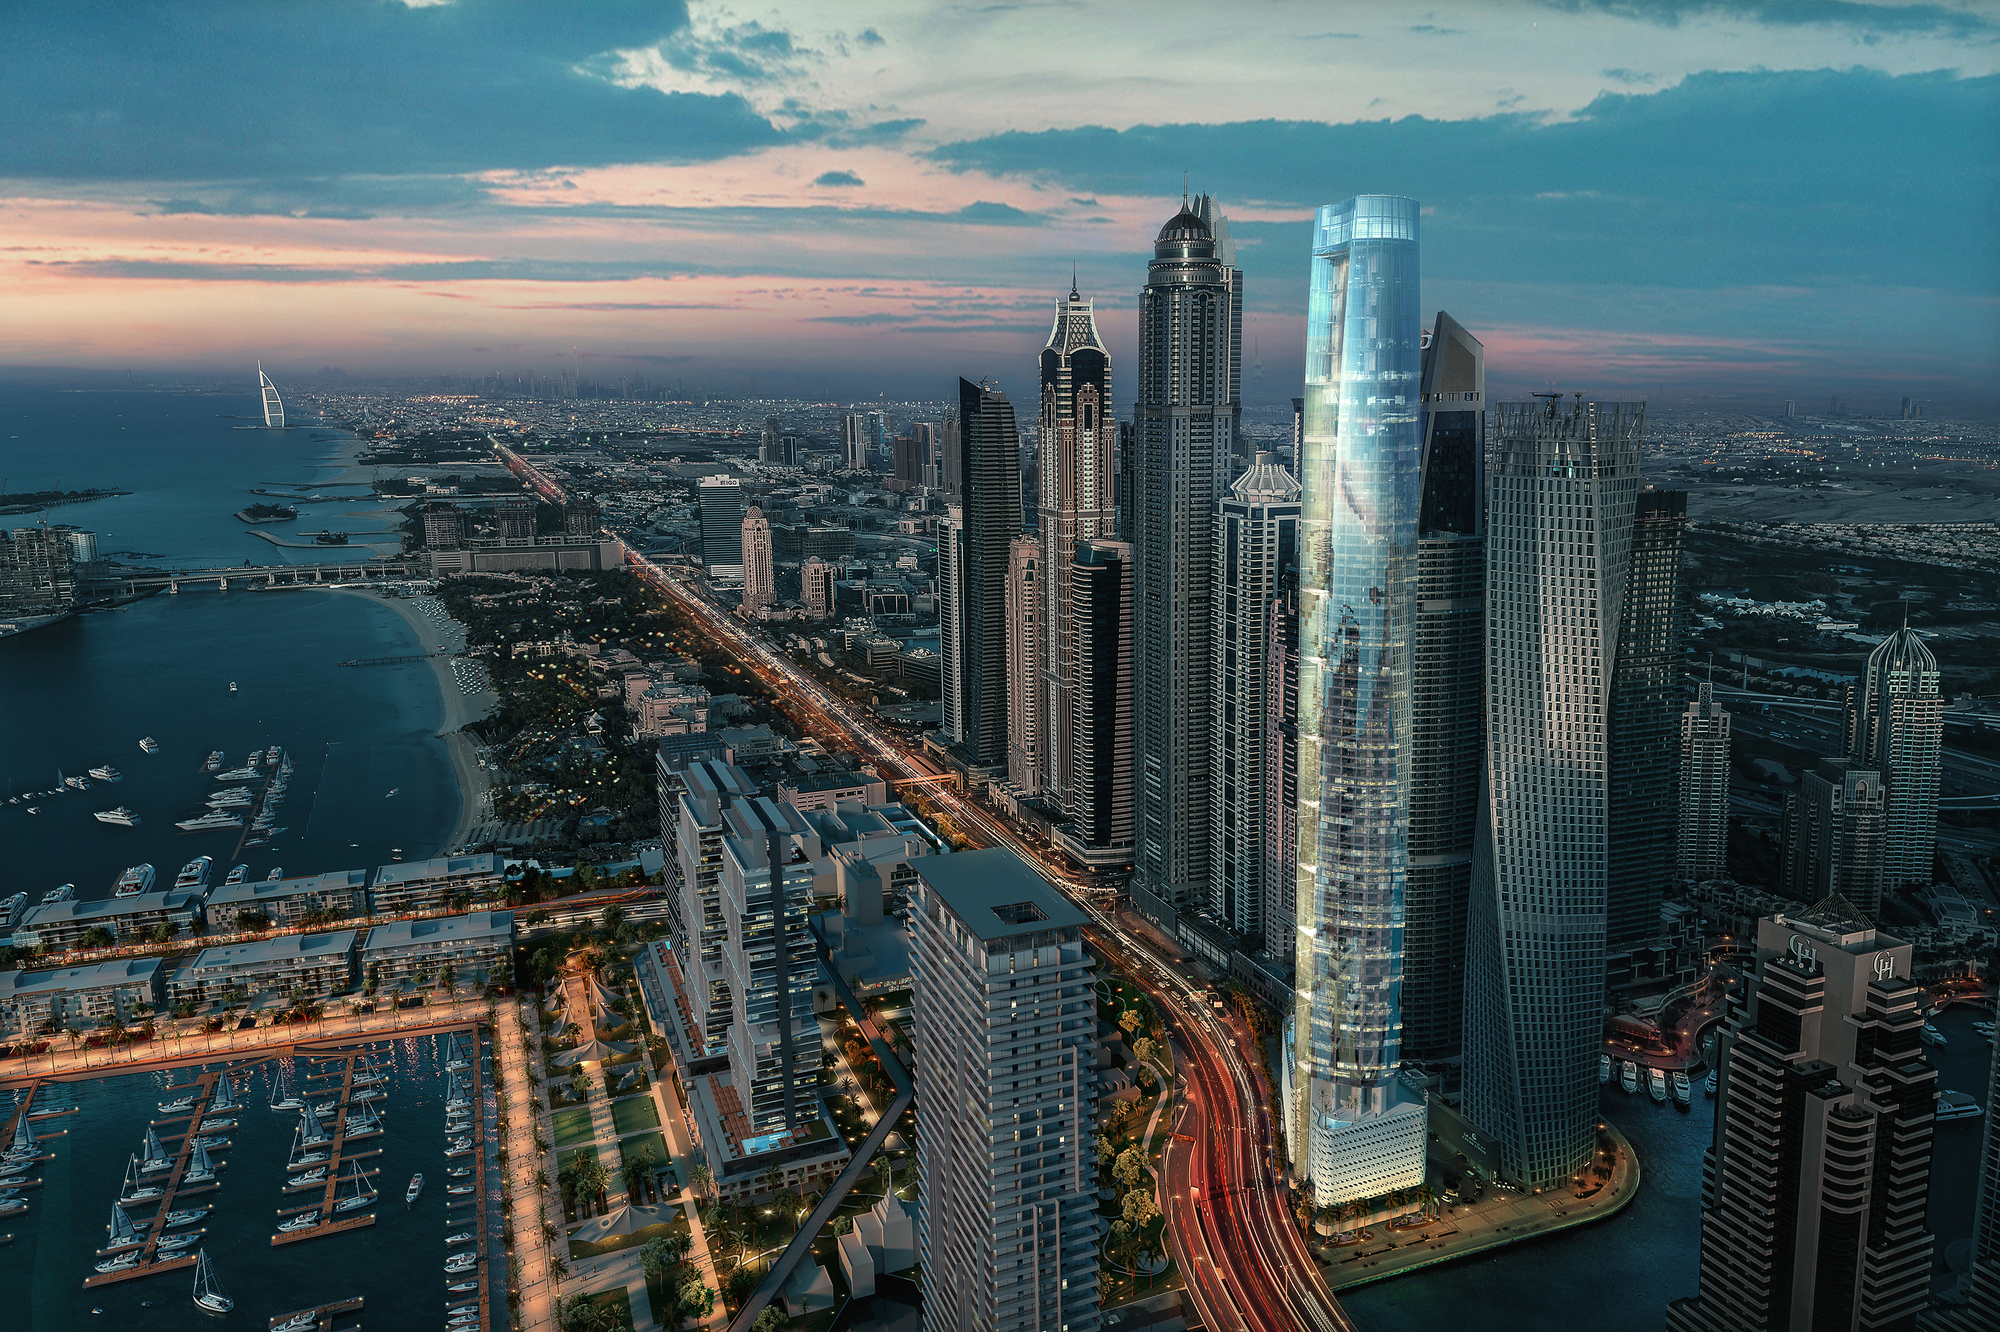 Ciel The World S Tallest Hotel Is Under Construction In Dubai Marina Archdaily